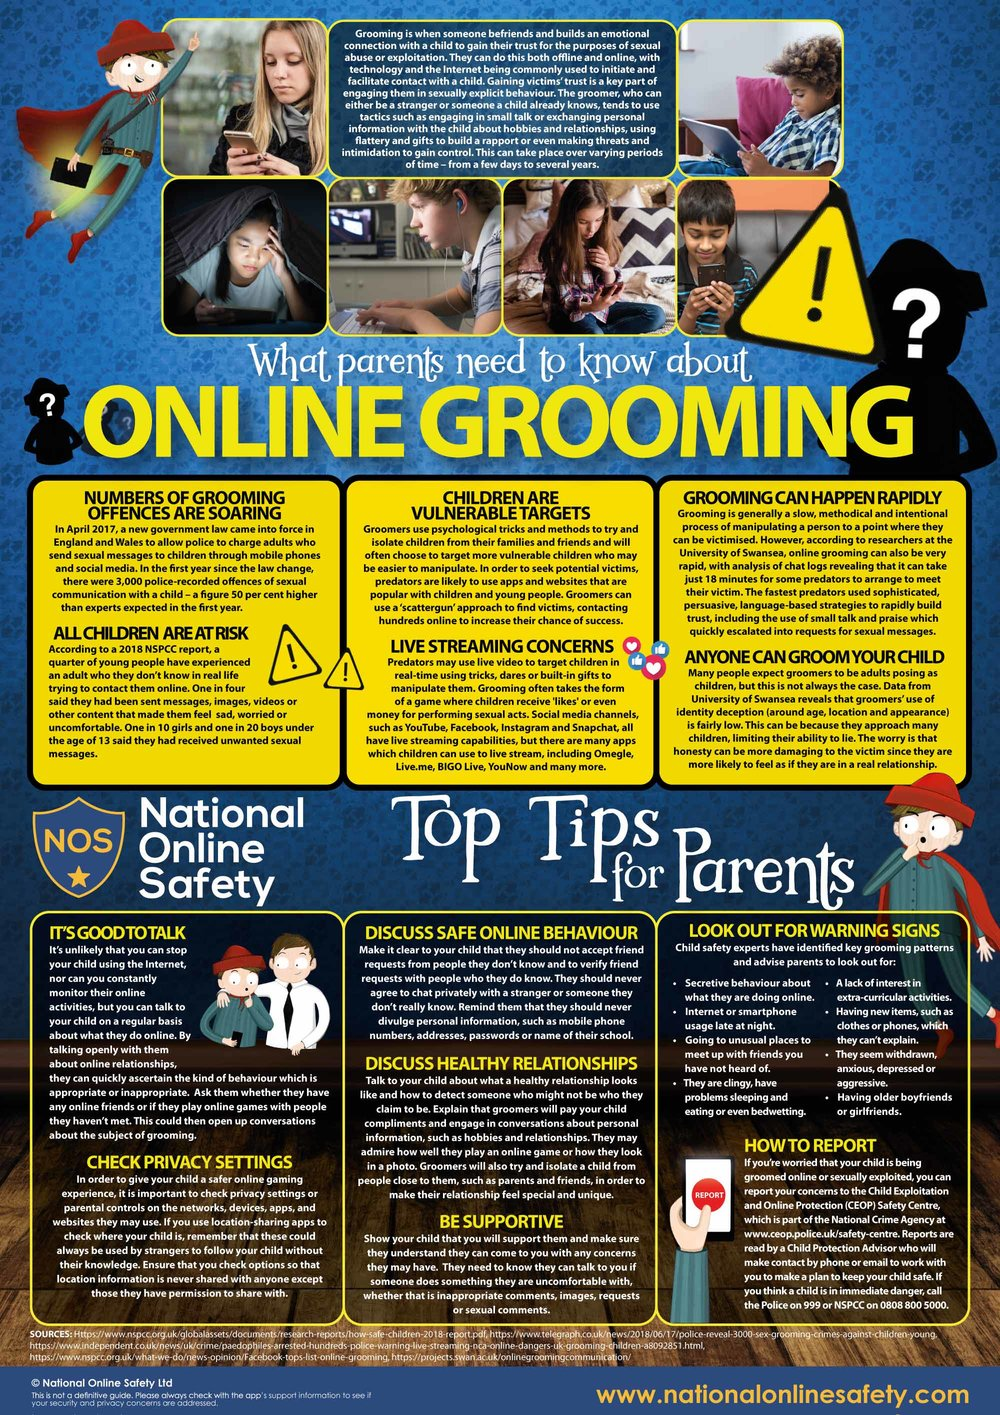 National Online Safety  Guide https://nationalonlinesafety.com/resources/platform-guides/